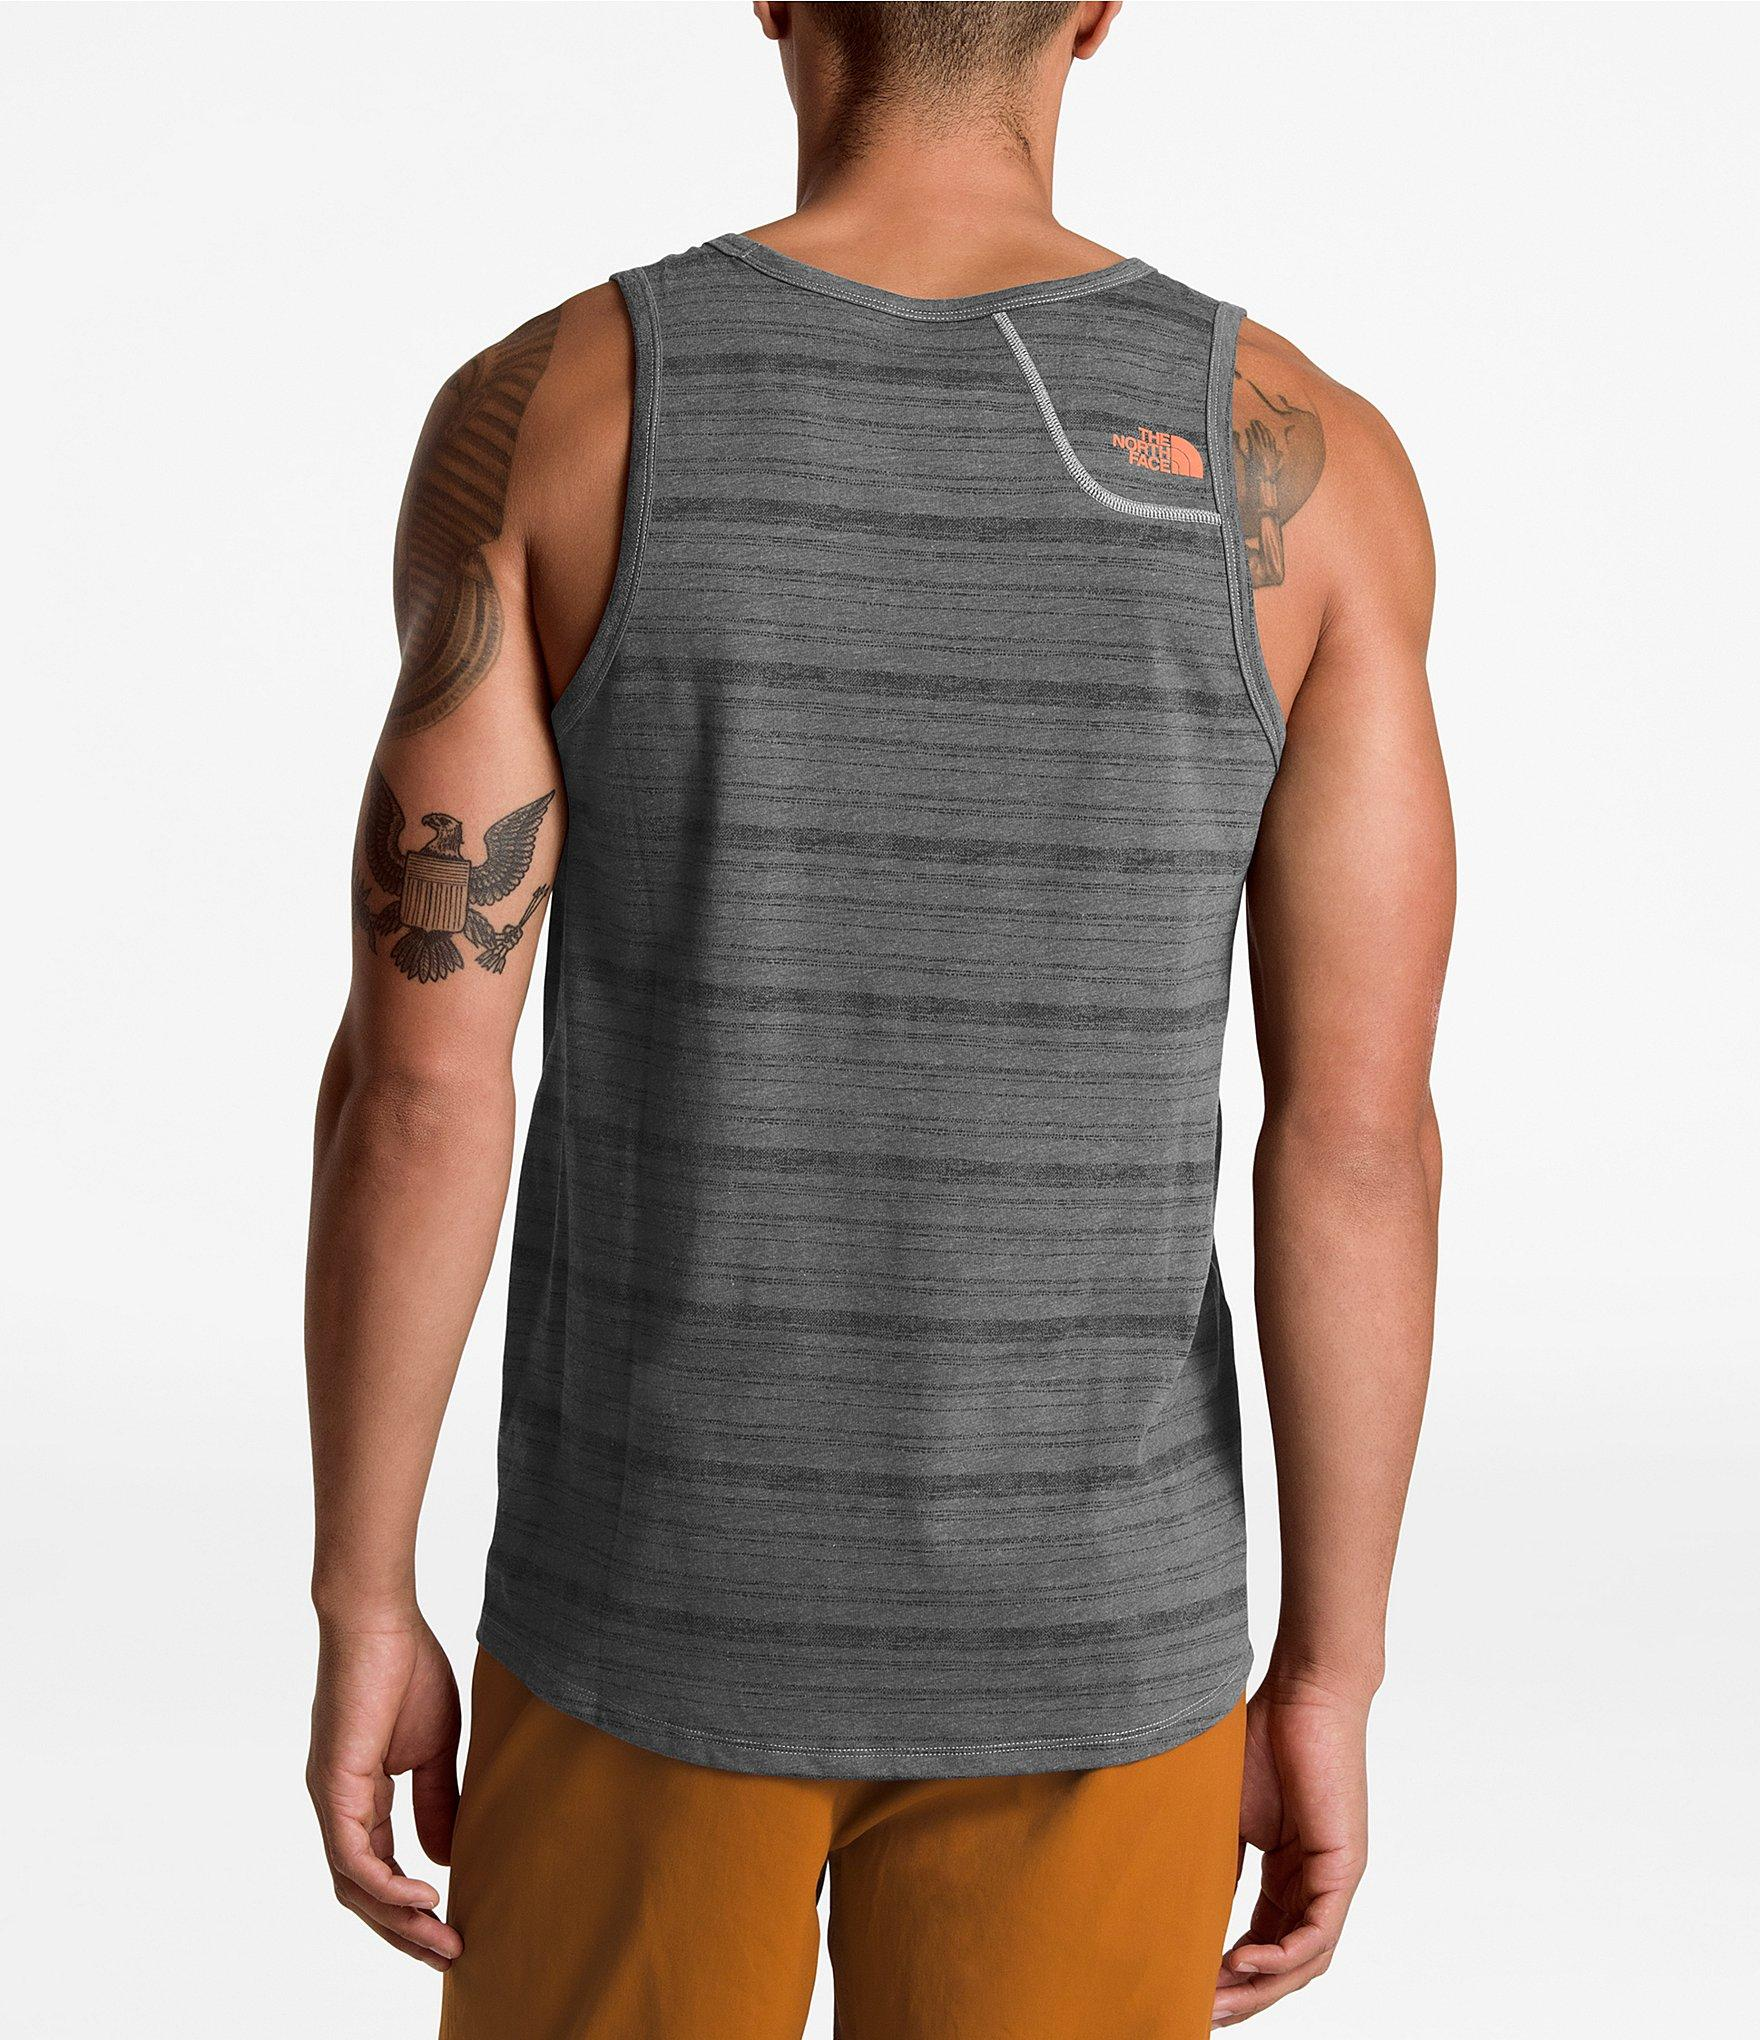 d64aaf64f Lyst - The North Face Beyond Wall Flashdry Tank in Gray for Men